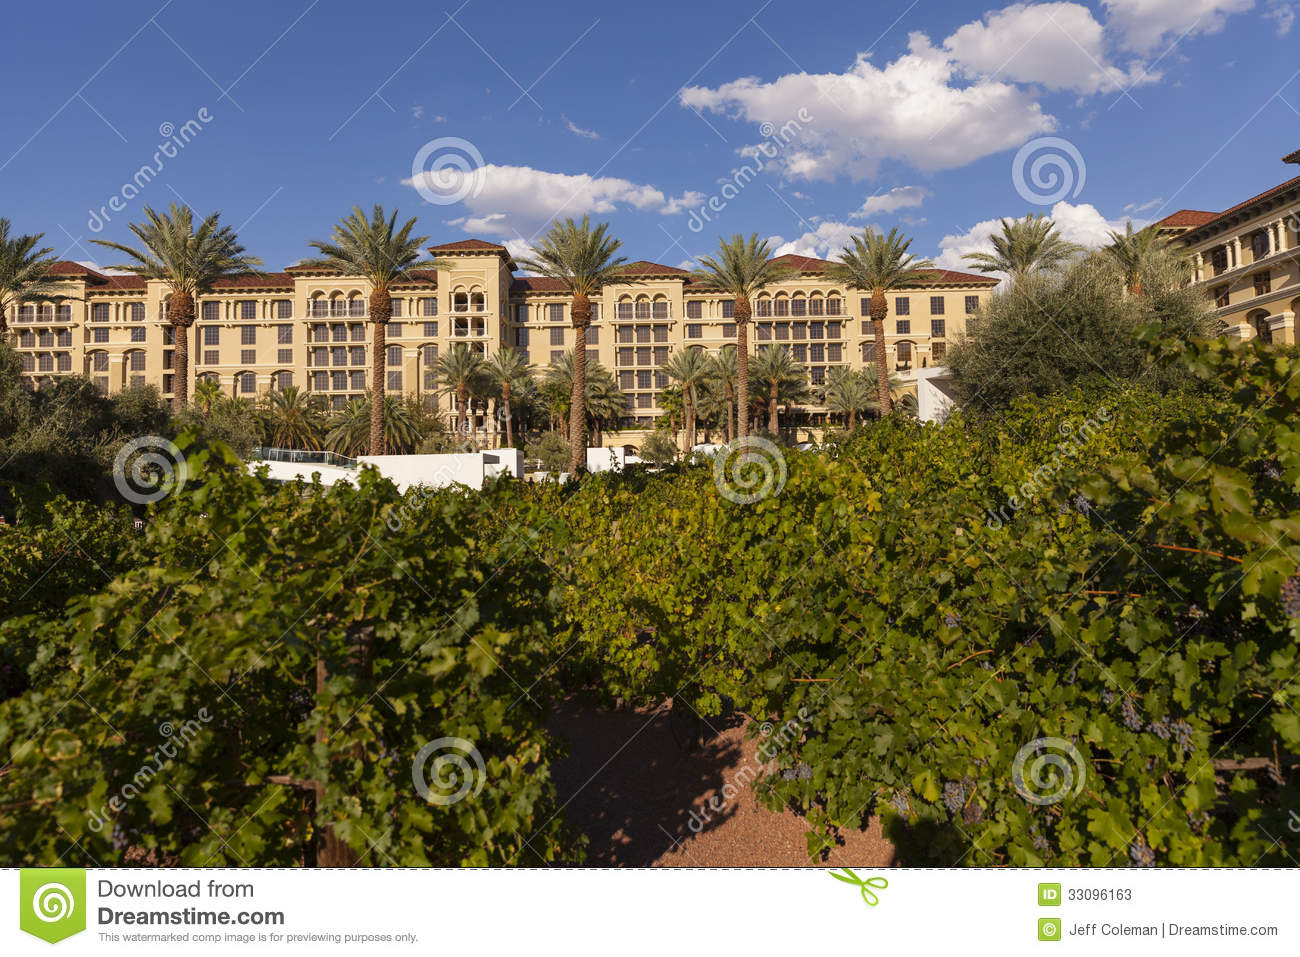 The Vineyard Hotel And Spa